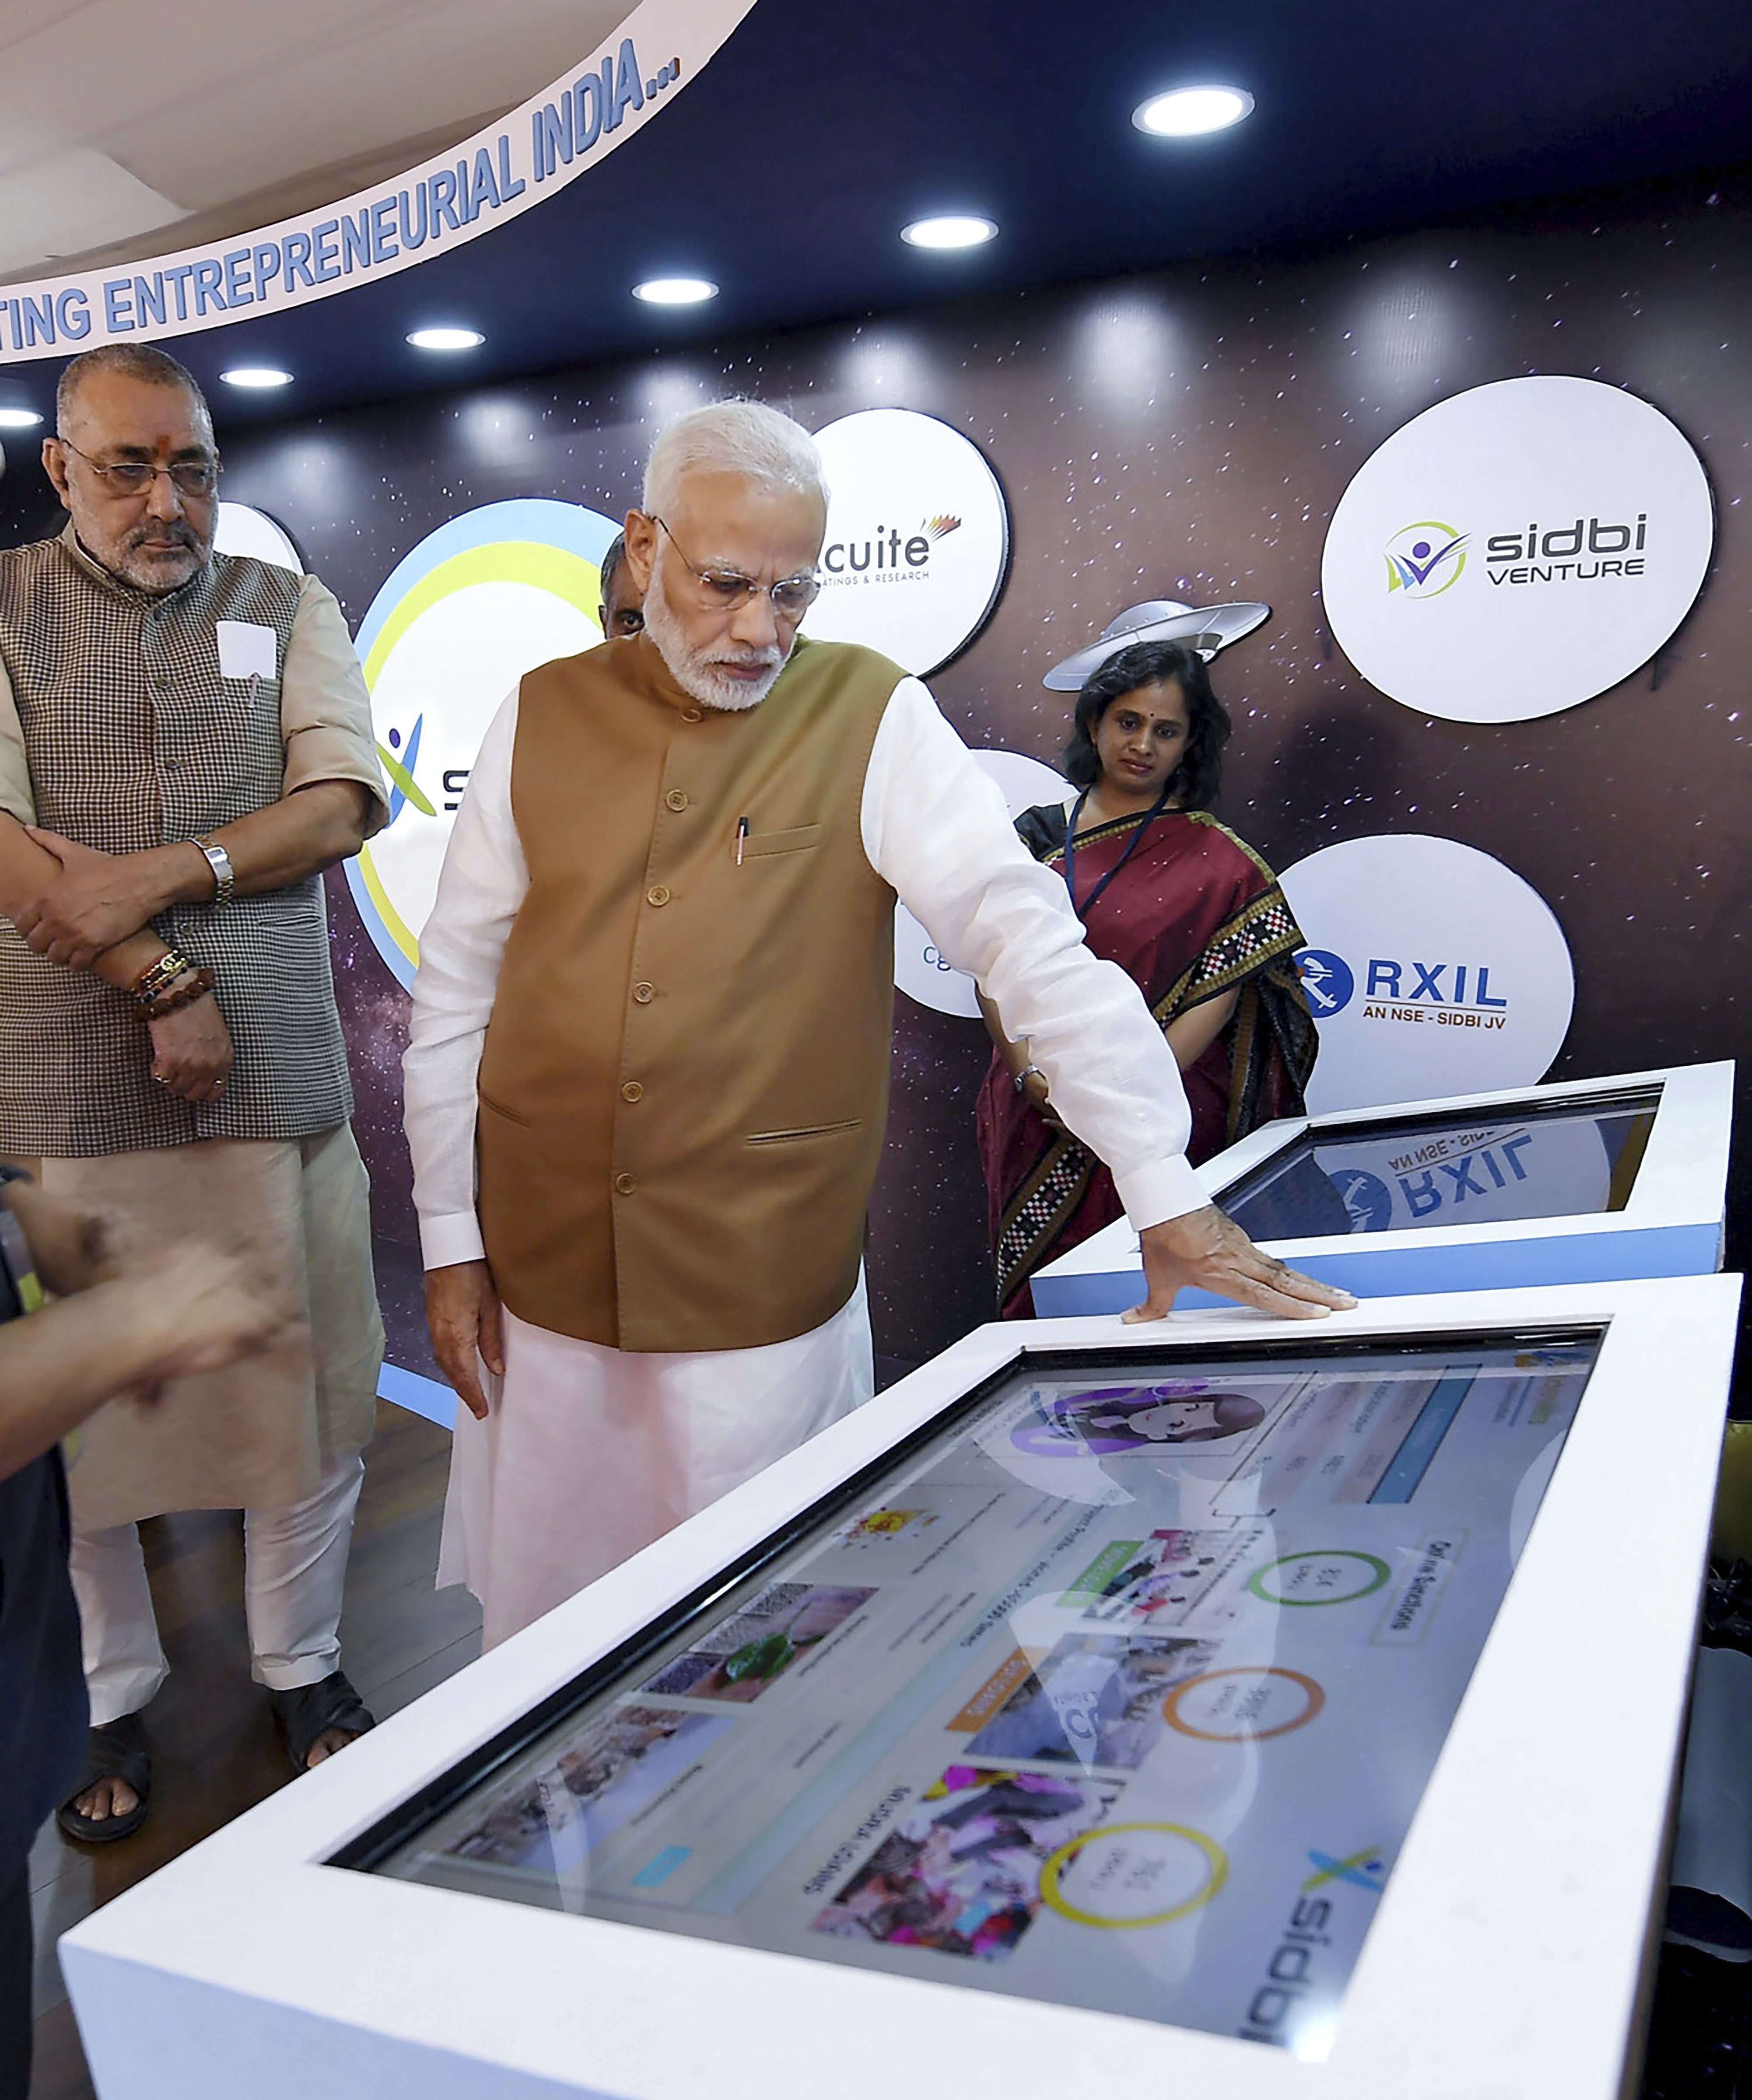 Prime Minister Narendra Modi visits an exhibition stall, at the launch of the Support and Outreach Initiative for MSMEs, in New Delhi - PTI